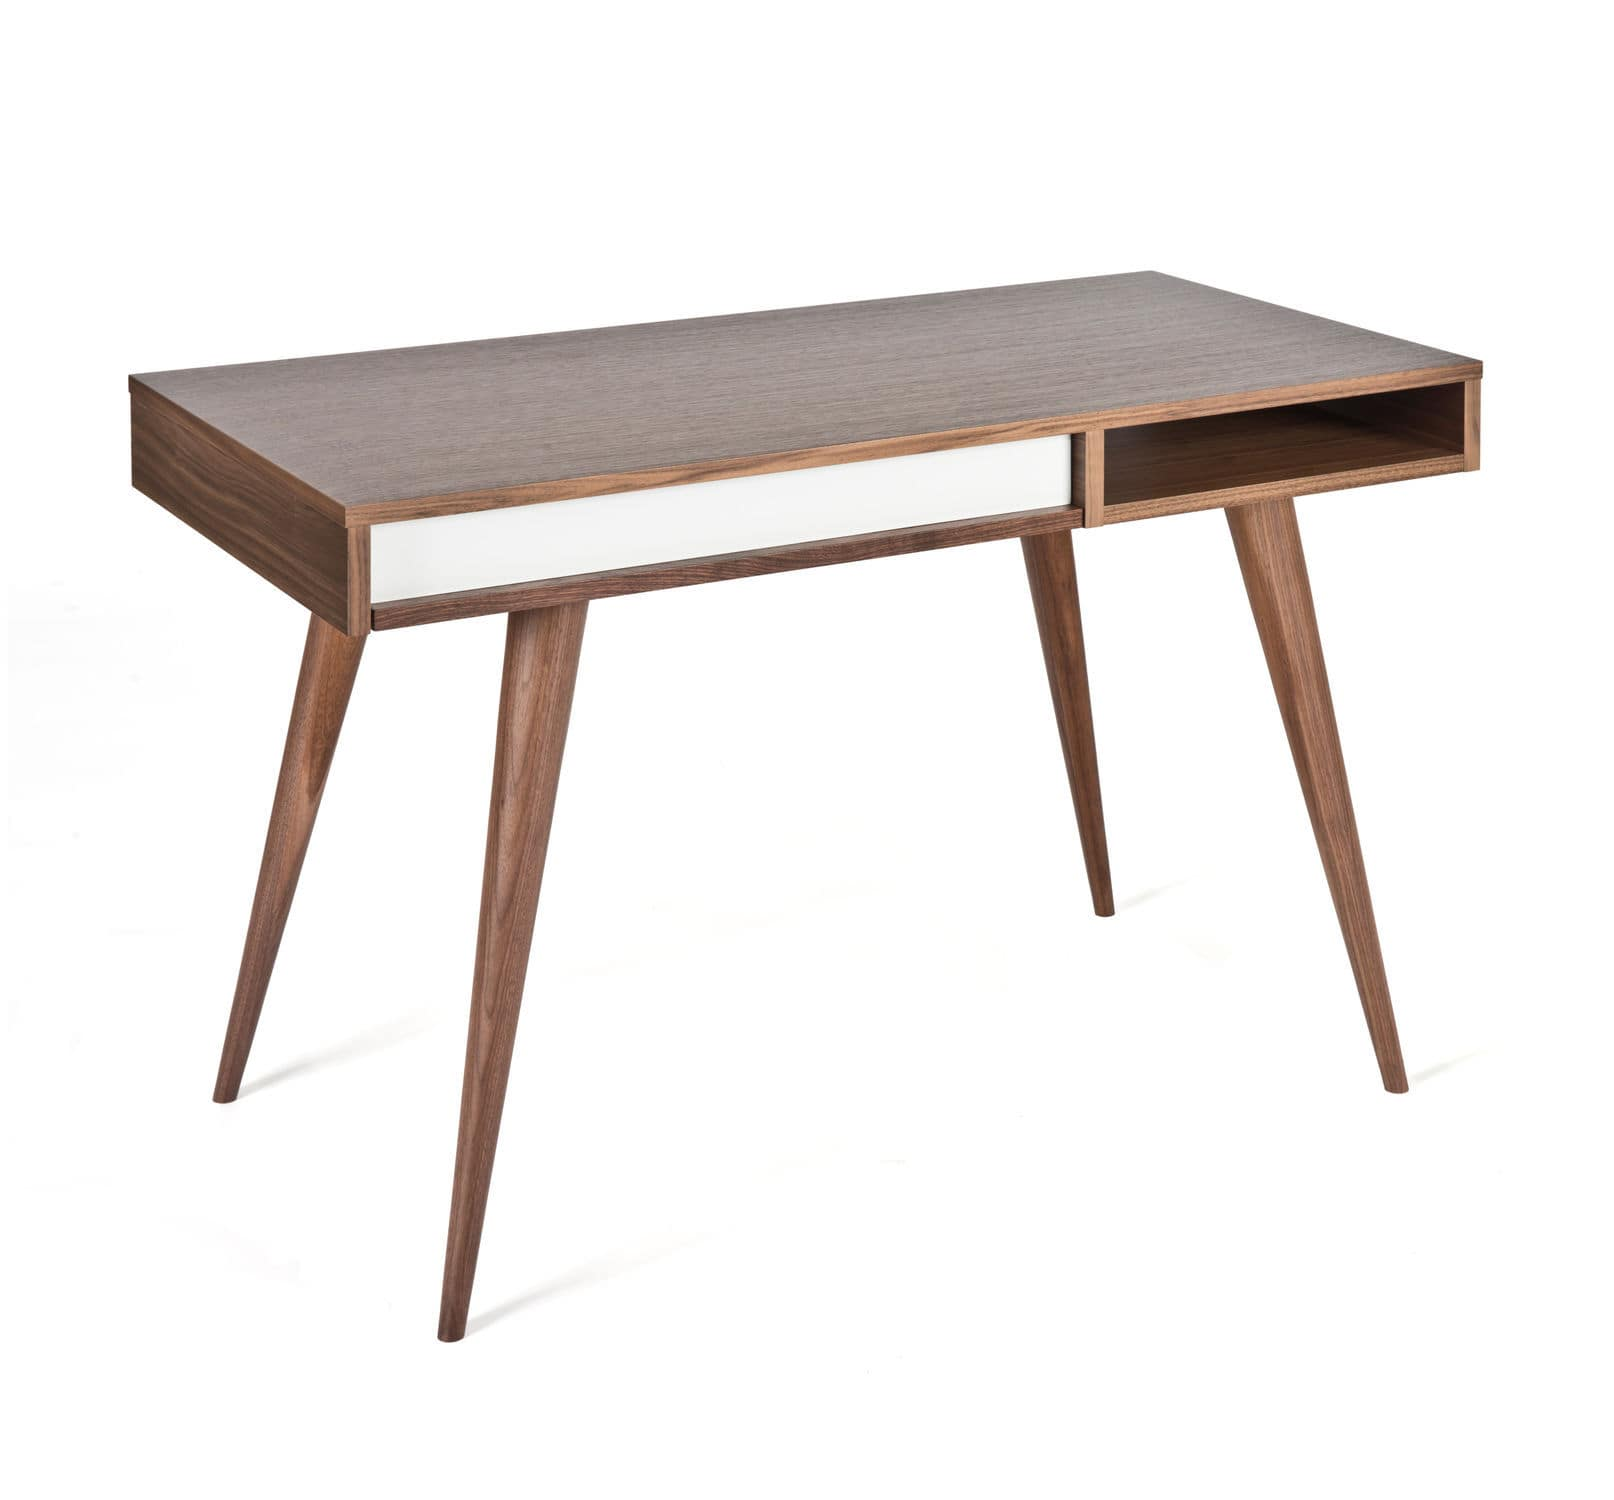 Wooden Desk Contemporary With Storage